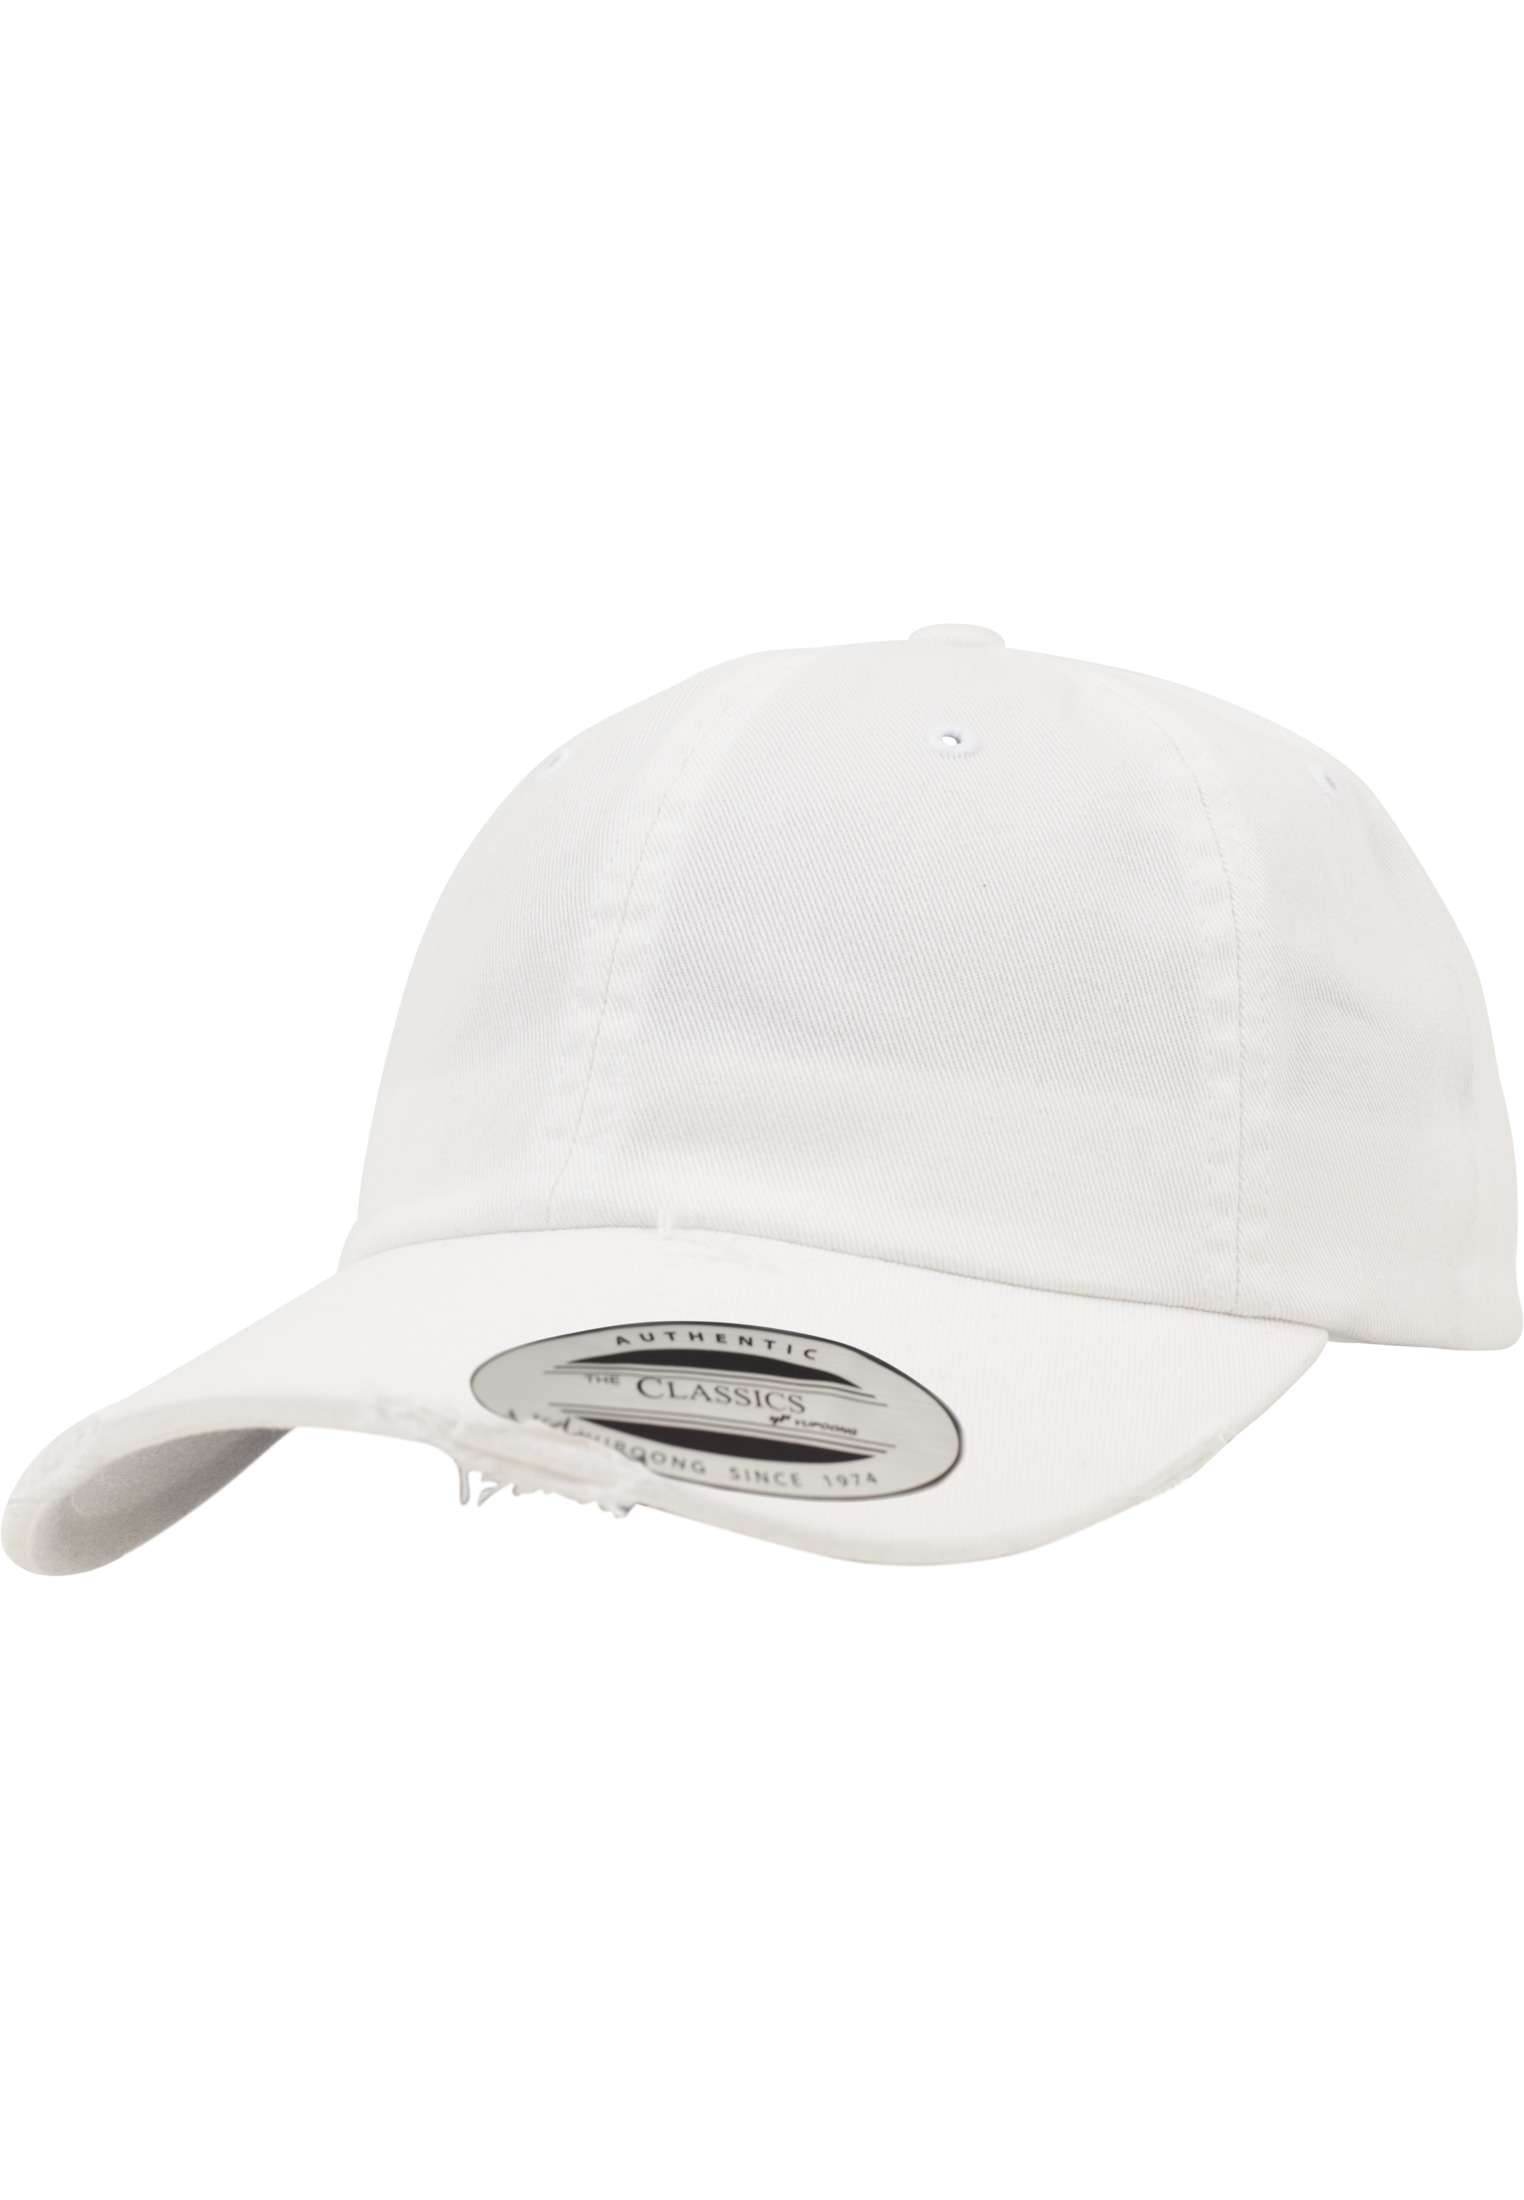 845e6bf404233 Low Profile Destroyed Cap - FLEXFIT CAPS - White